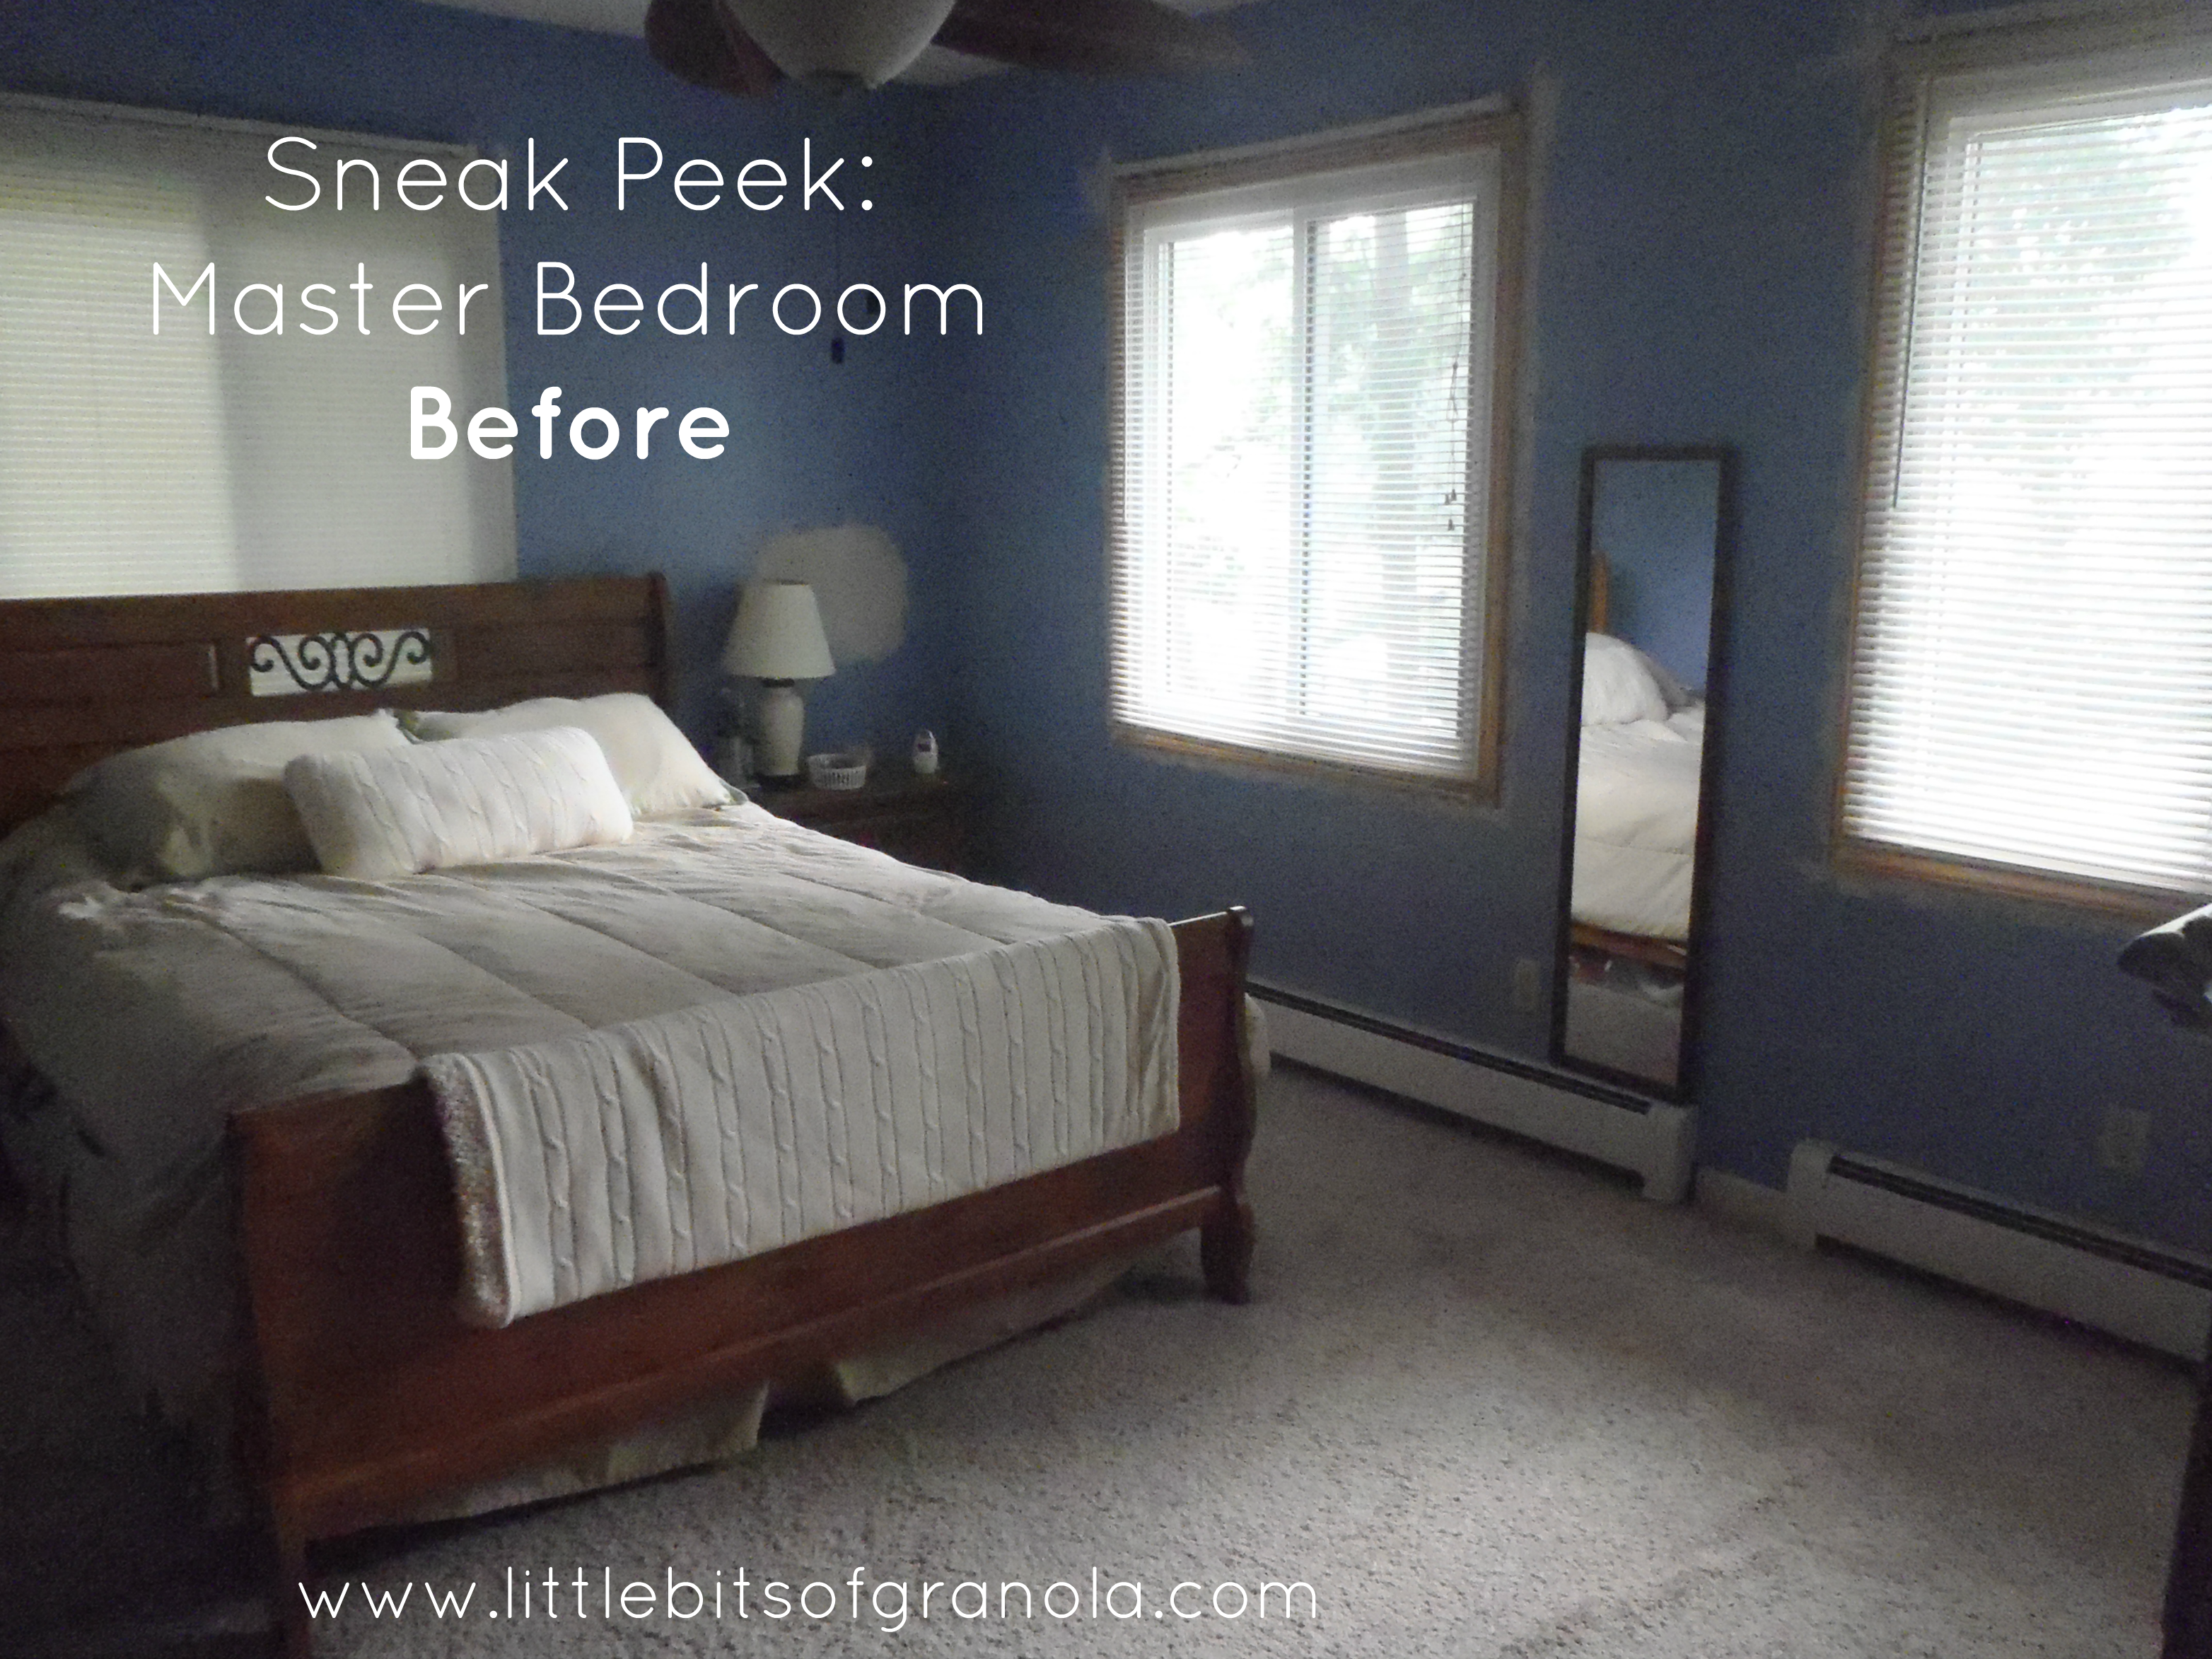 a sneak peek at my master bedroom makeover here is one of the before pics